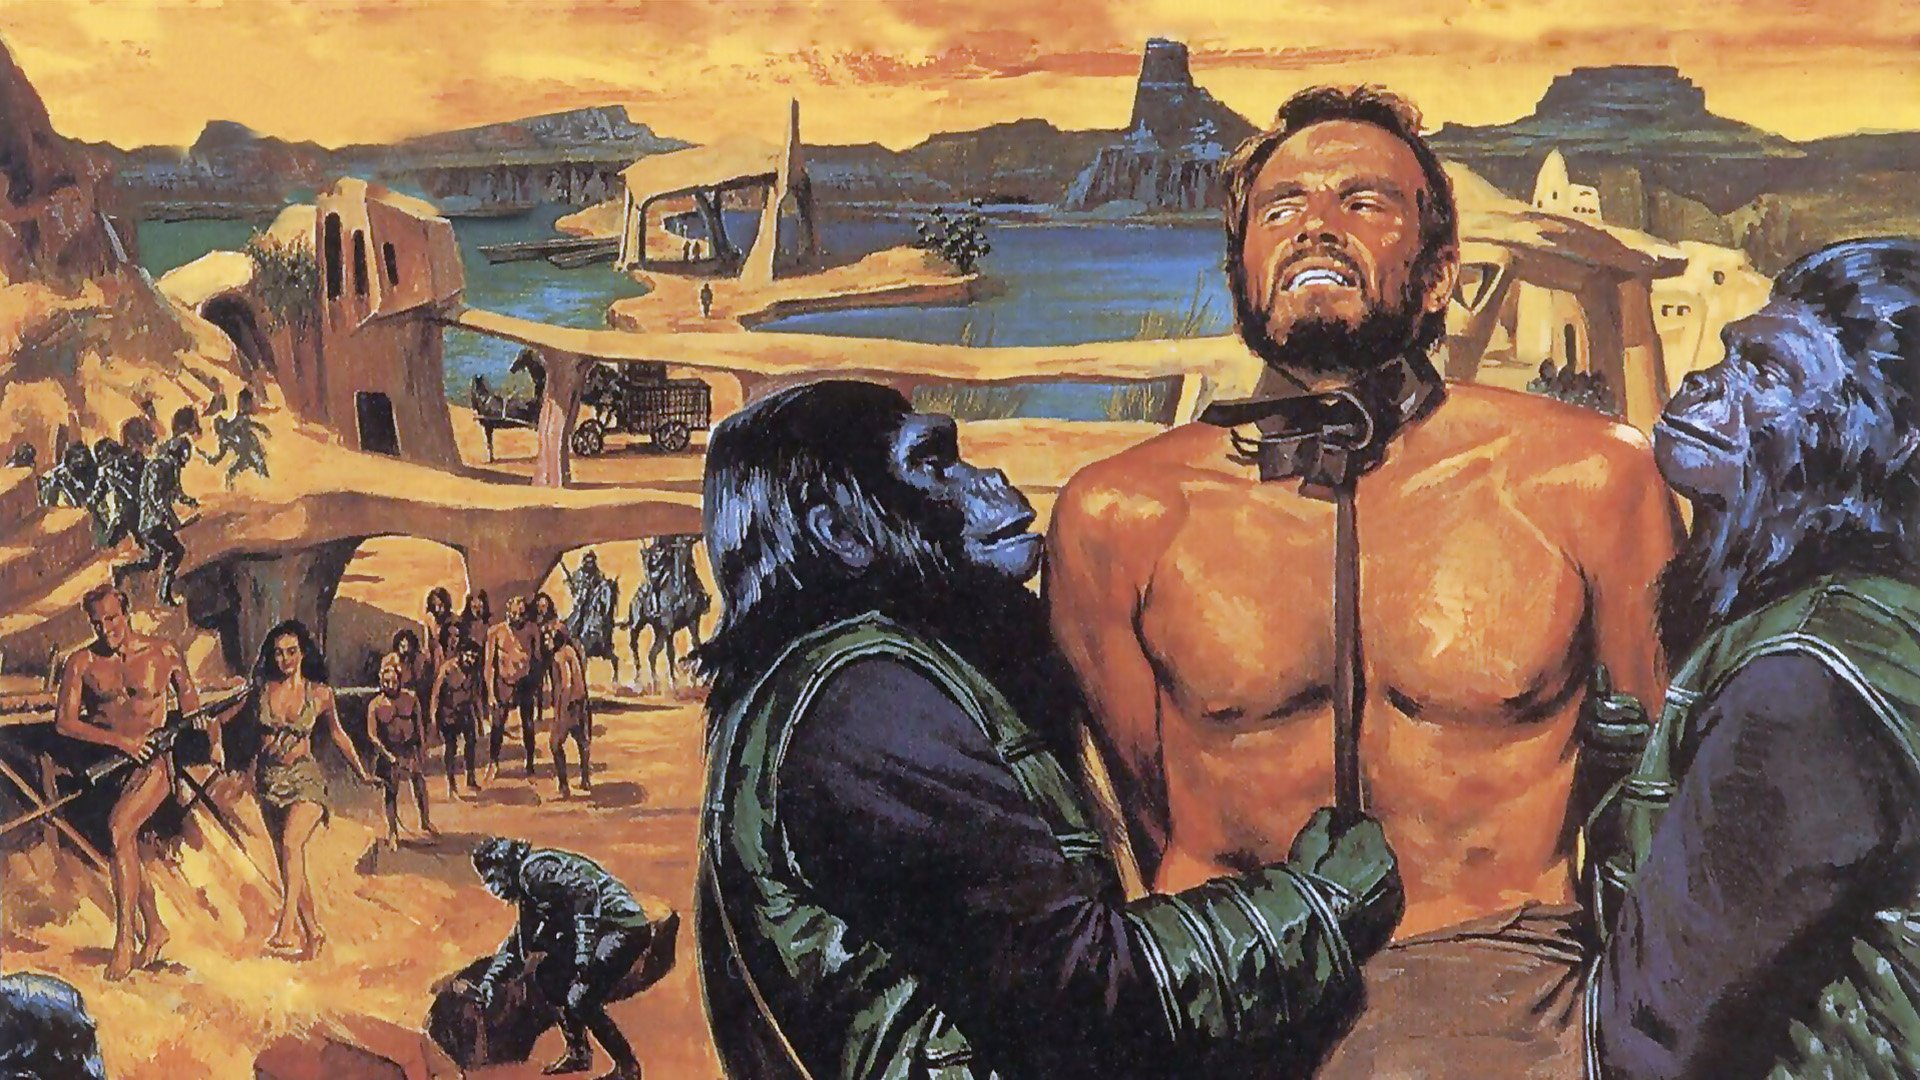 Planet Of The Apes 1968 Hd Wallpaper Background Image